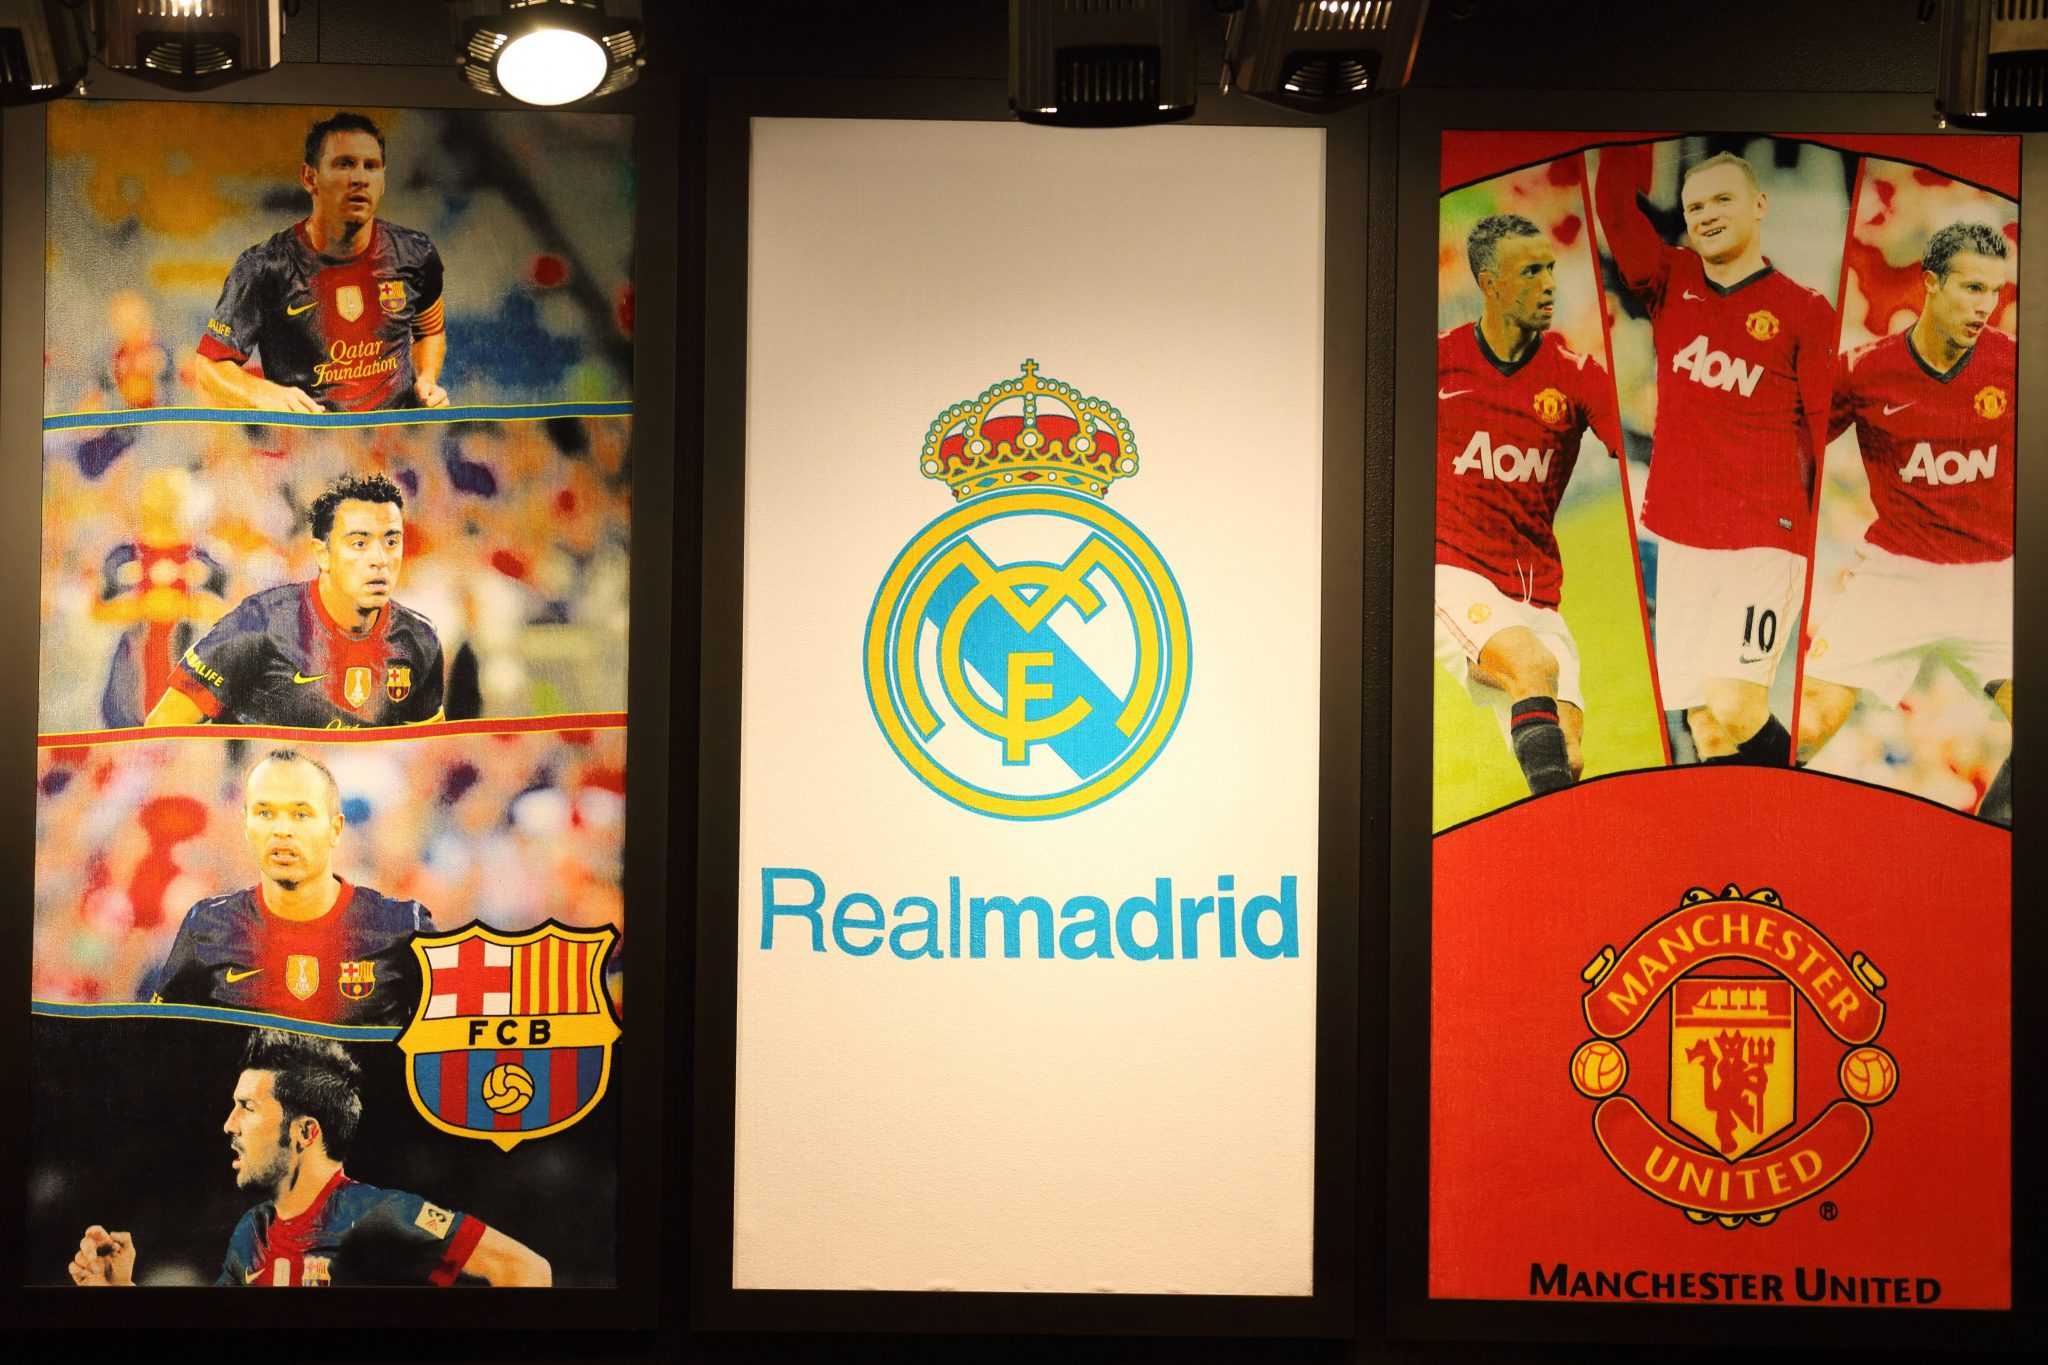 Barcelona among three top clubs set to receive €350 million for joining the European Super League - Bóng Đá